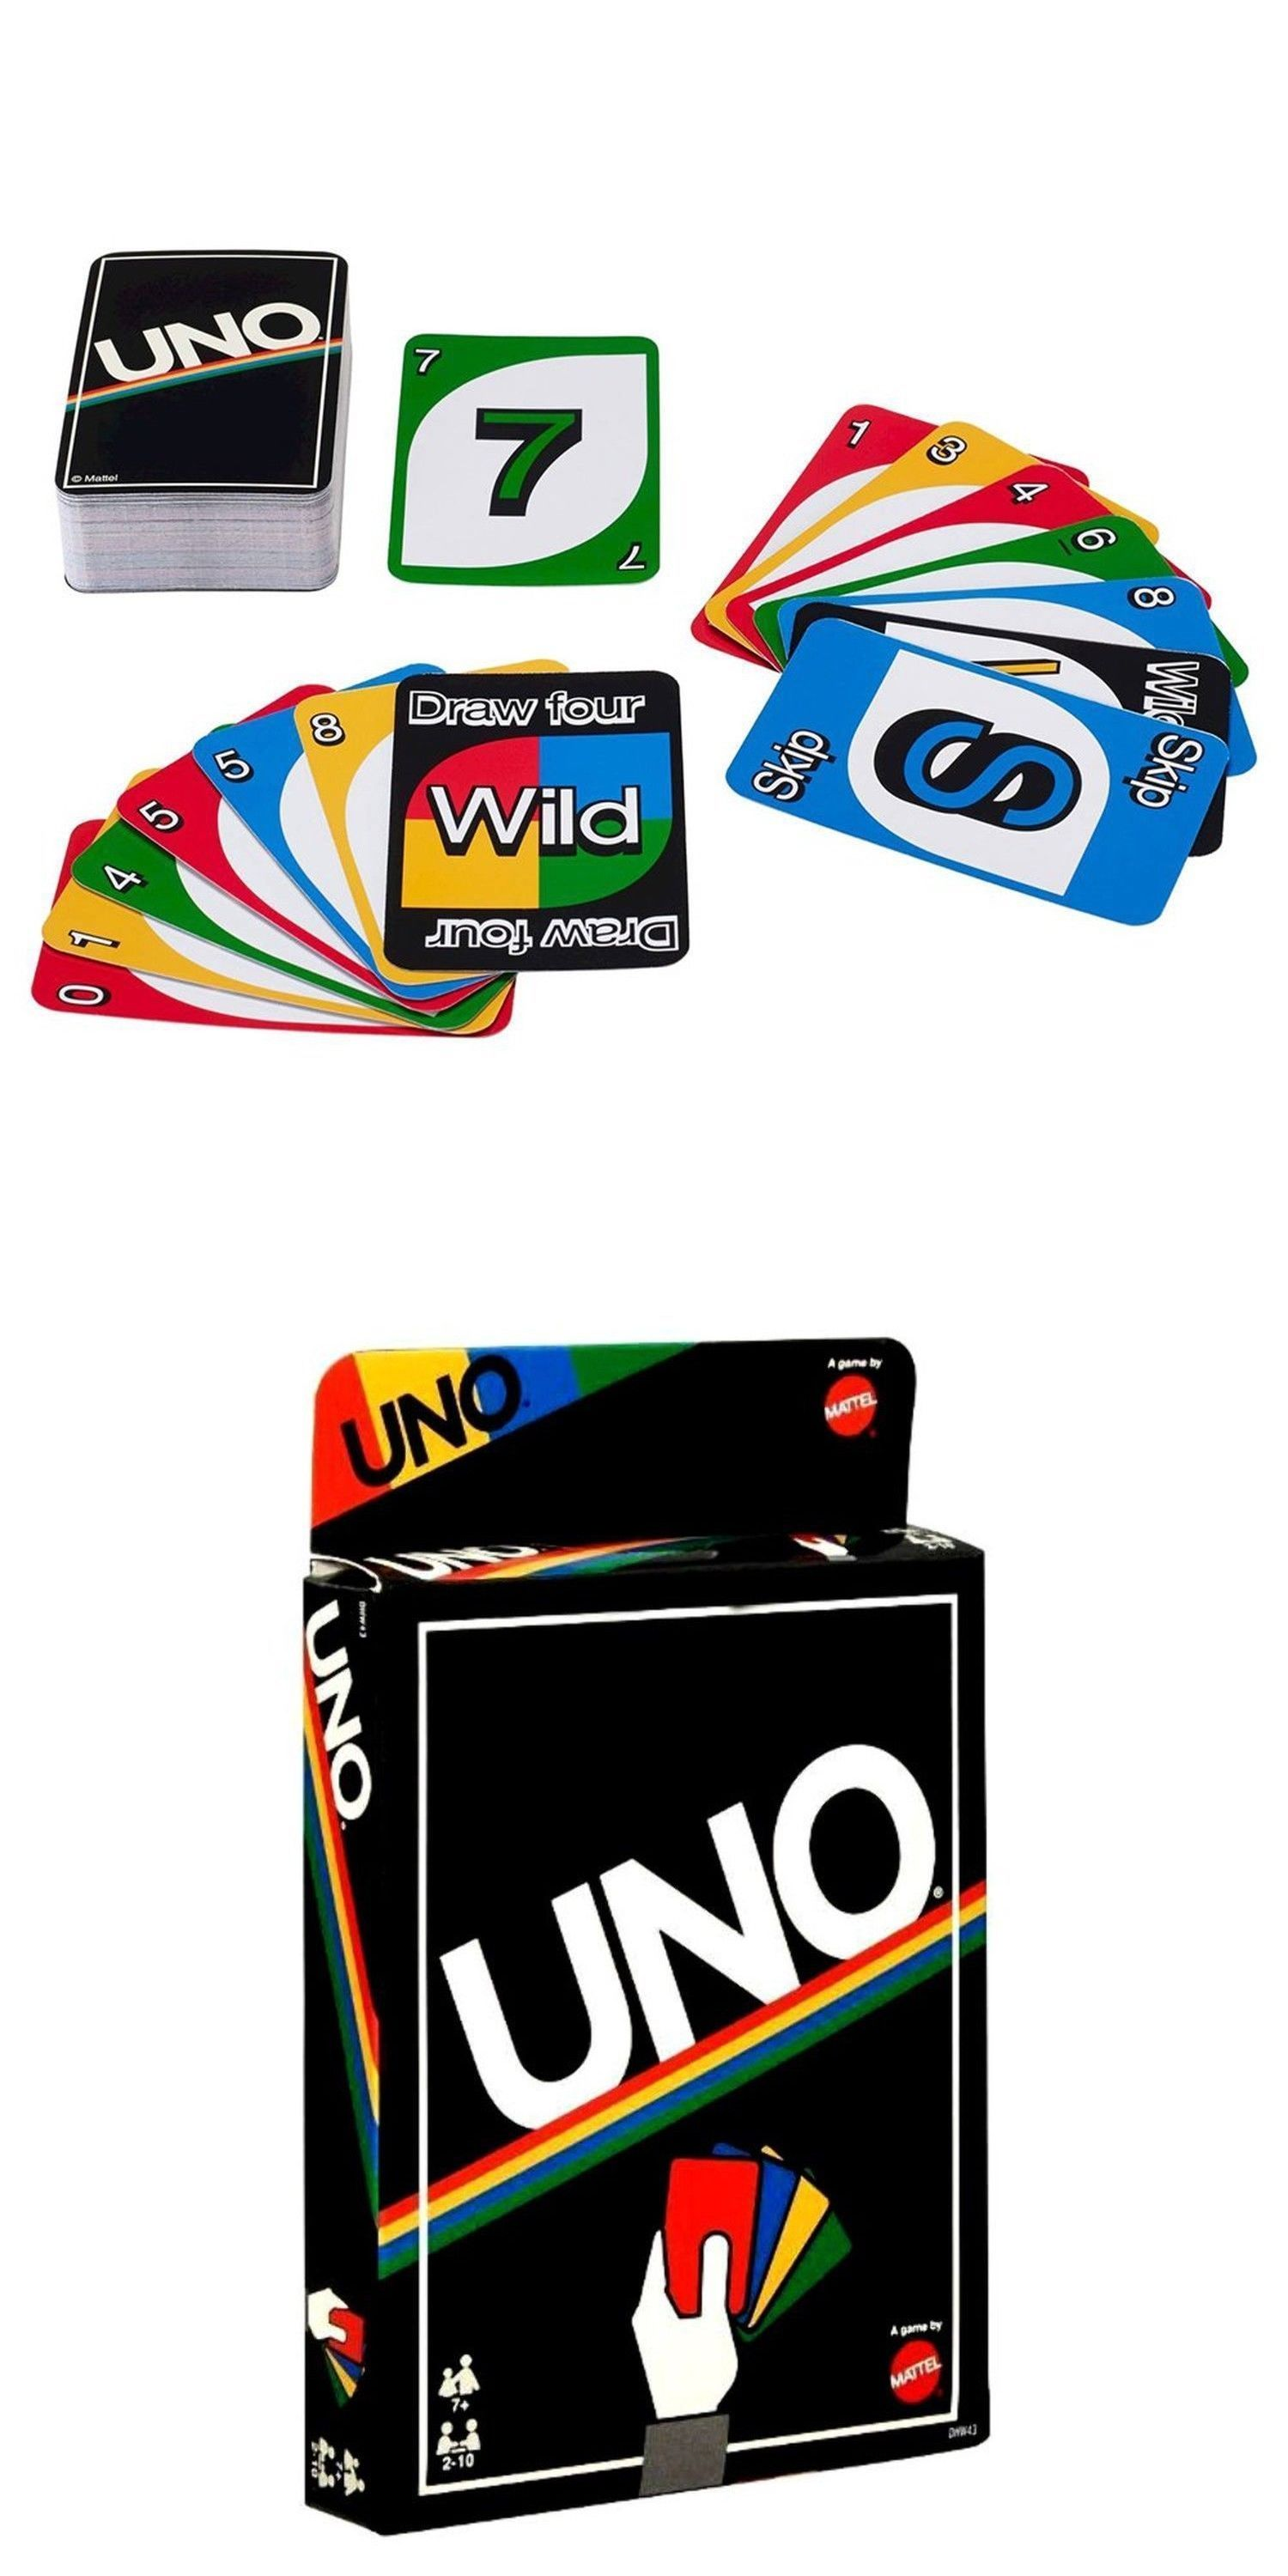 Card Games Contemporary 19082 Uno Retro Card Game Retro Edition By Mattel Brand New Buy It Now Only 14 98 On E Blink Card Game Uno Card Game Uno Cards